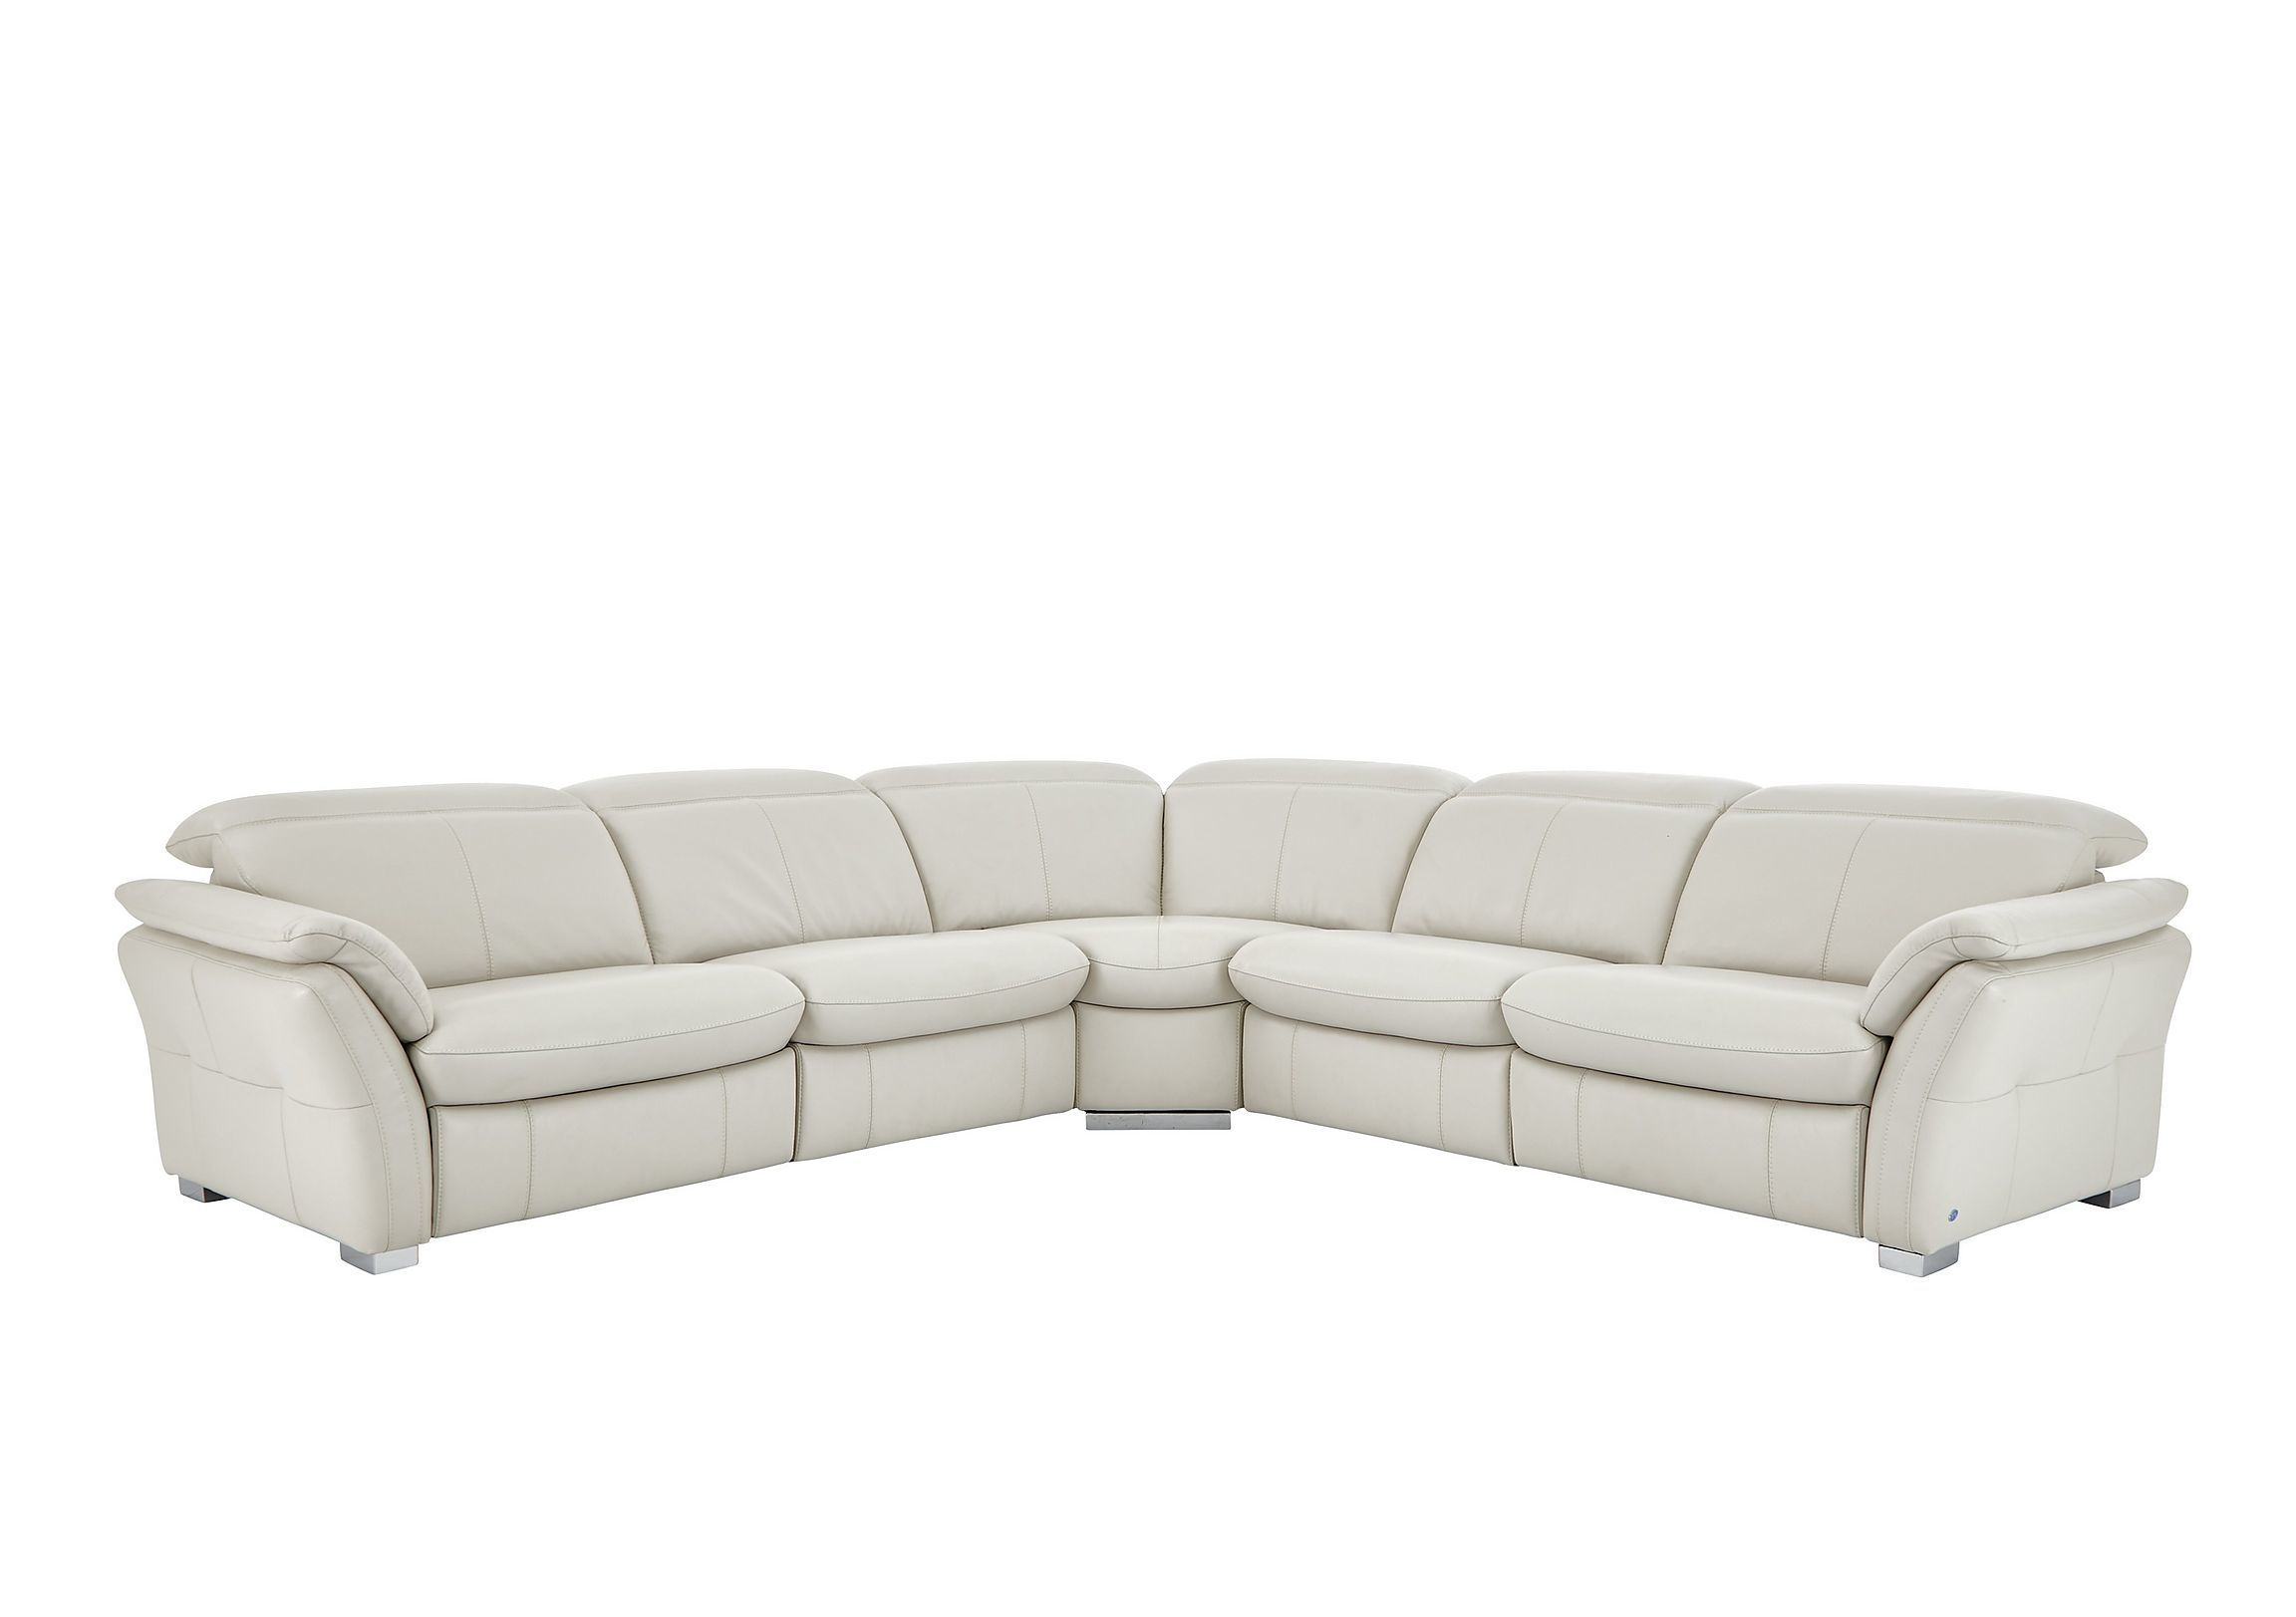 stunning ethan allen leather sofa design-Fascinating Ethan Allen Leather sofa Image